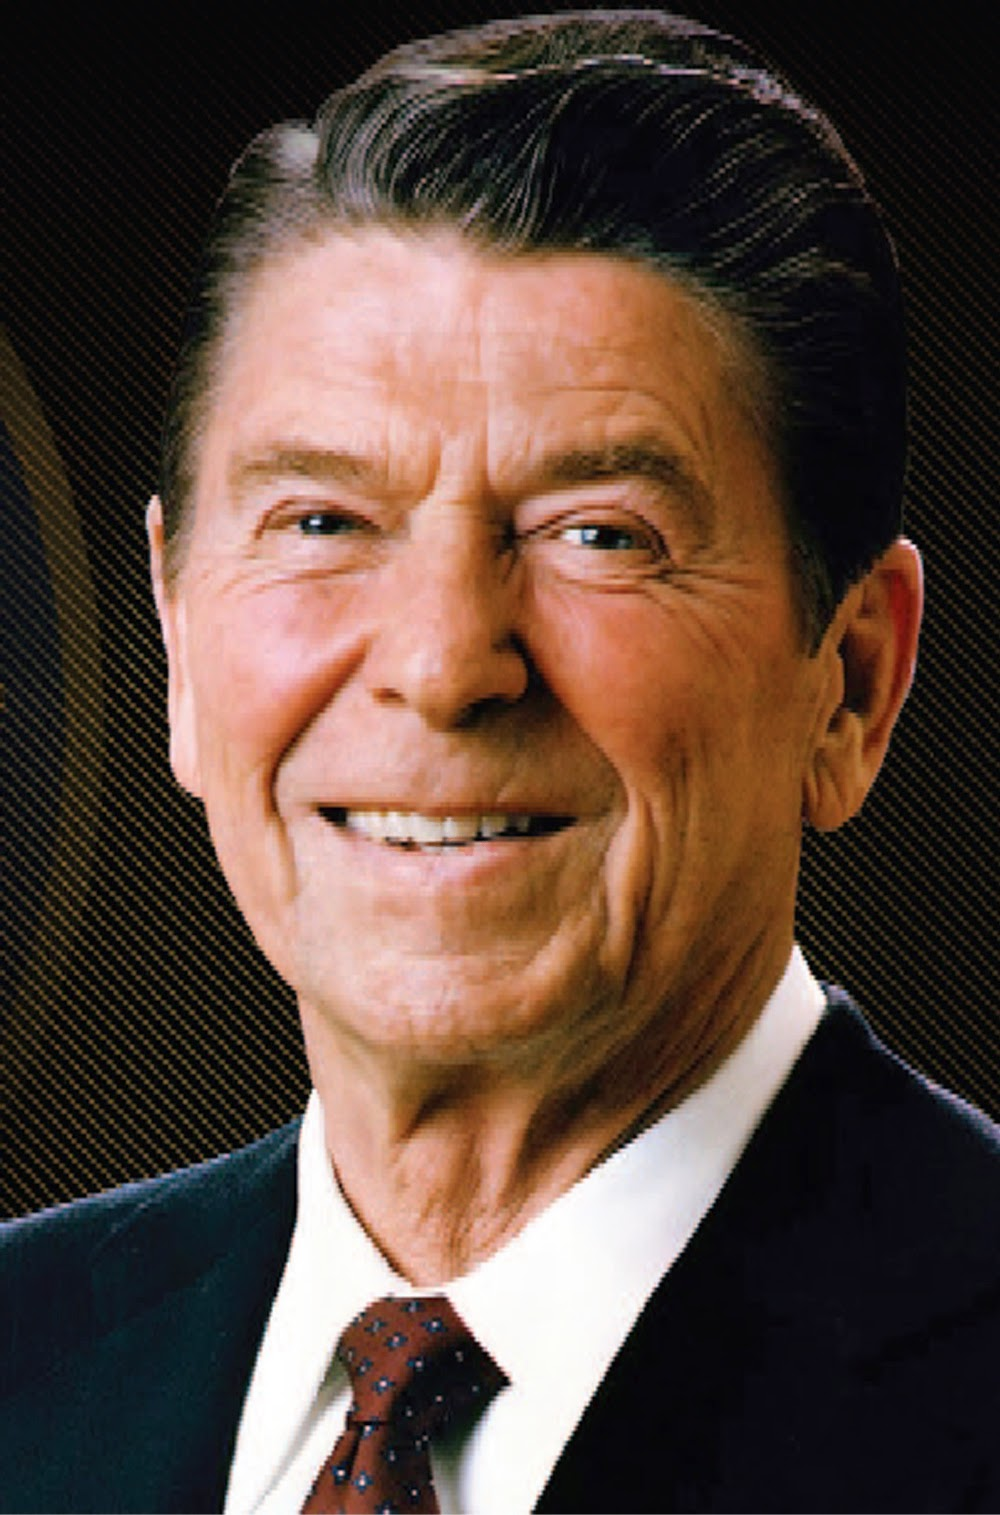 a biography of ronald reagan president of the united states Ronald reagan biography for lower elementary school students he was president of the united states, and he fought for freedom and a good life for americans as a class, complete the ronald reagan day timeline (see attached.